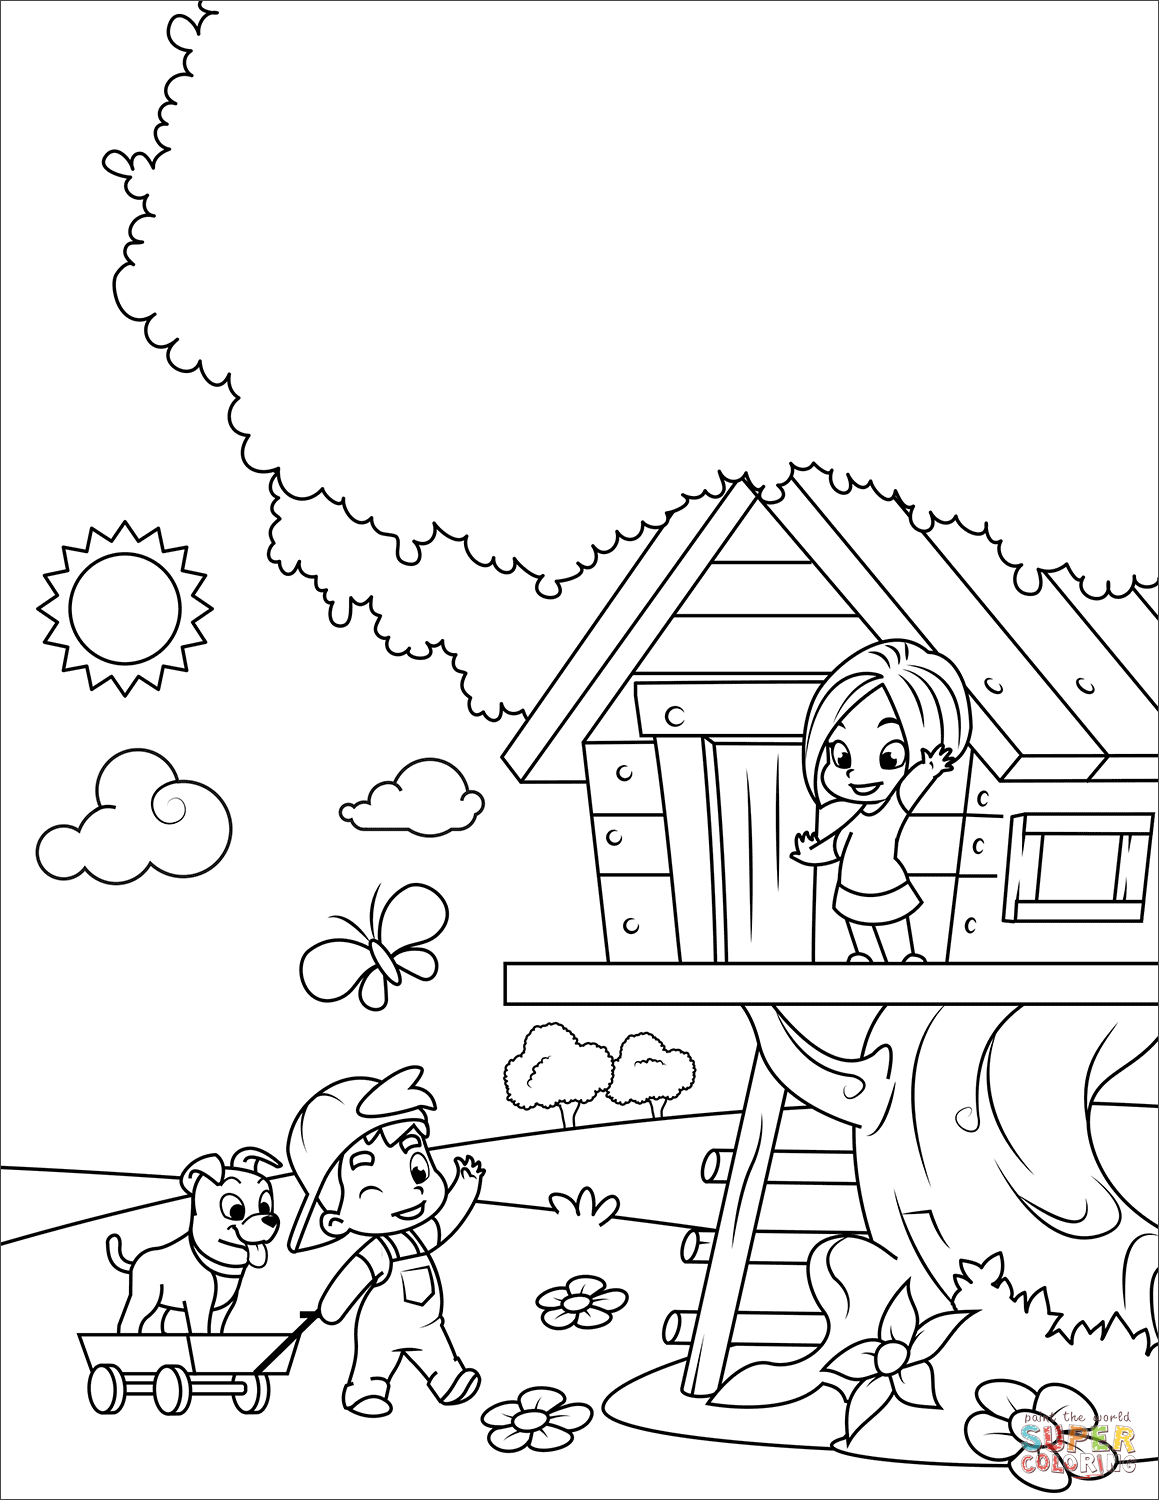 Boy And Girl Playing In A Tree House Coloring Page